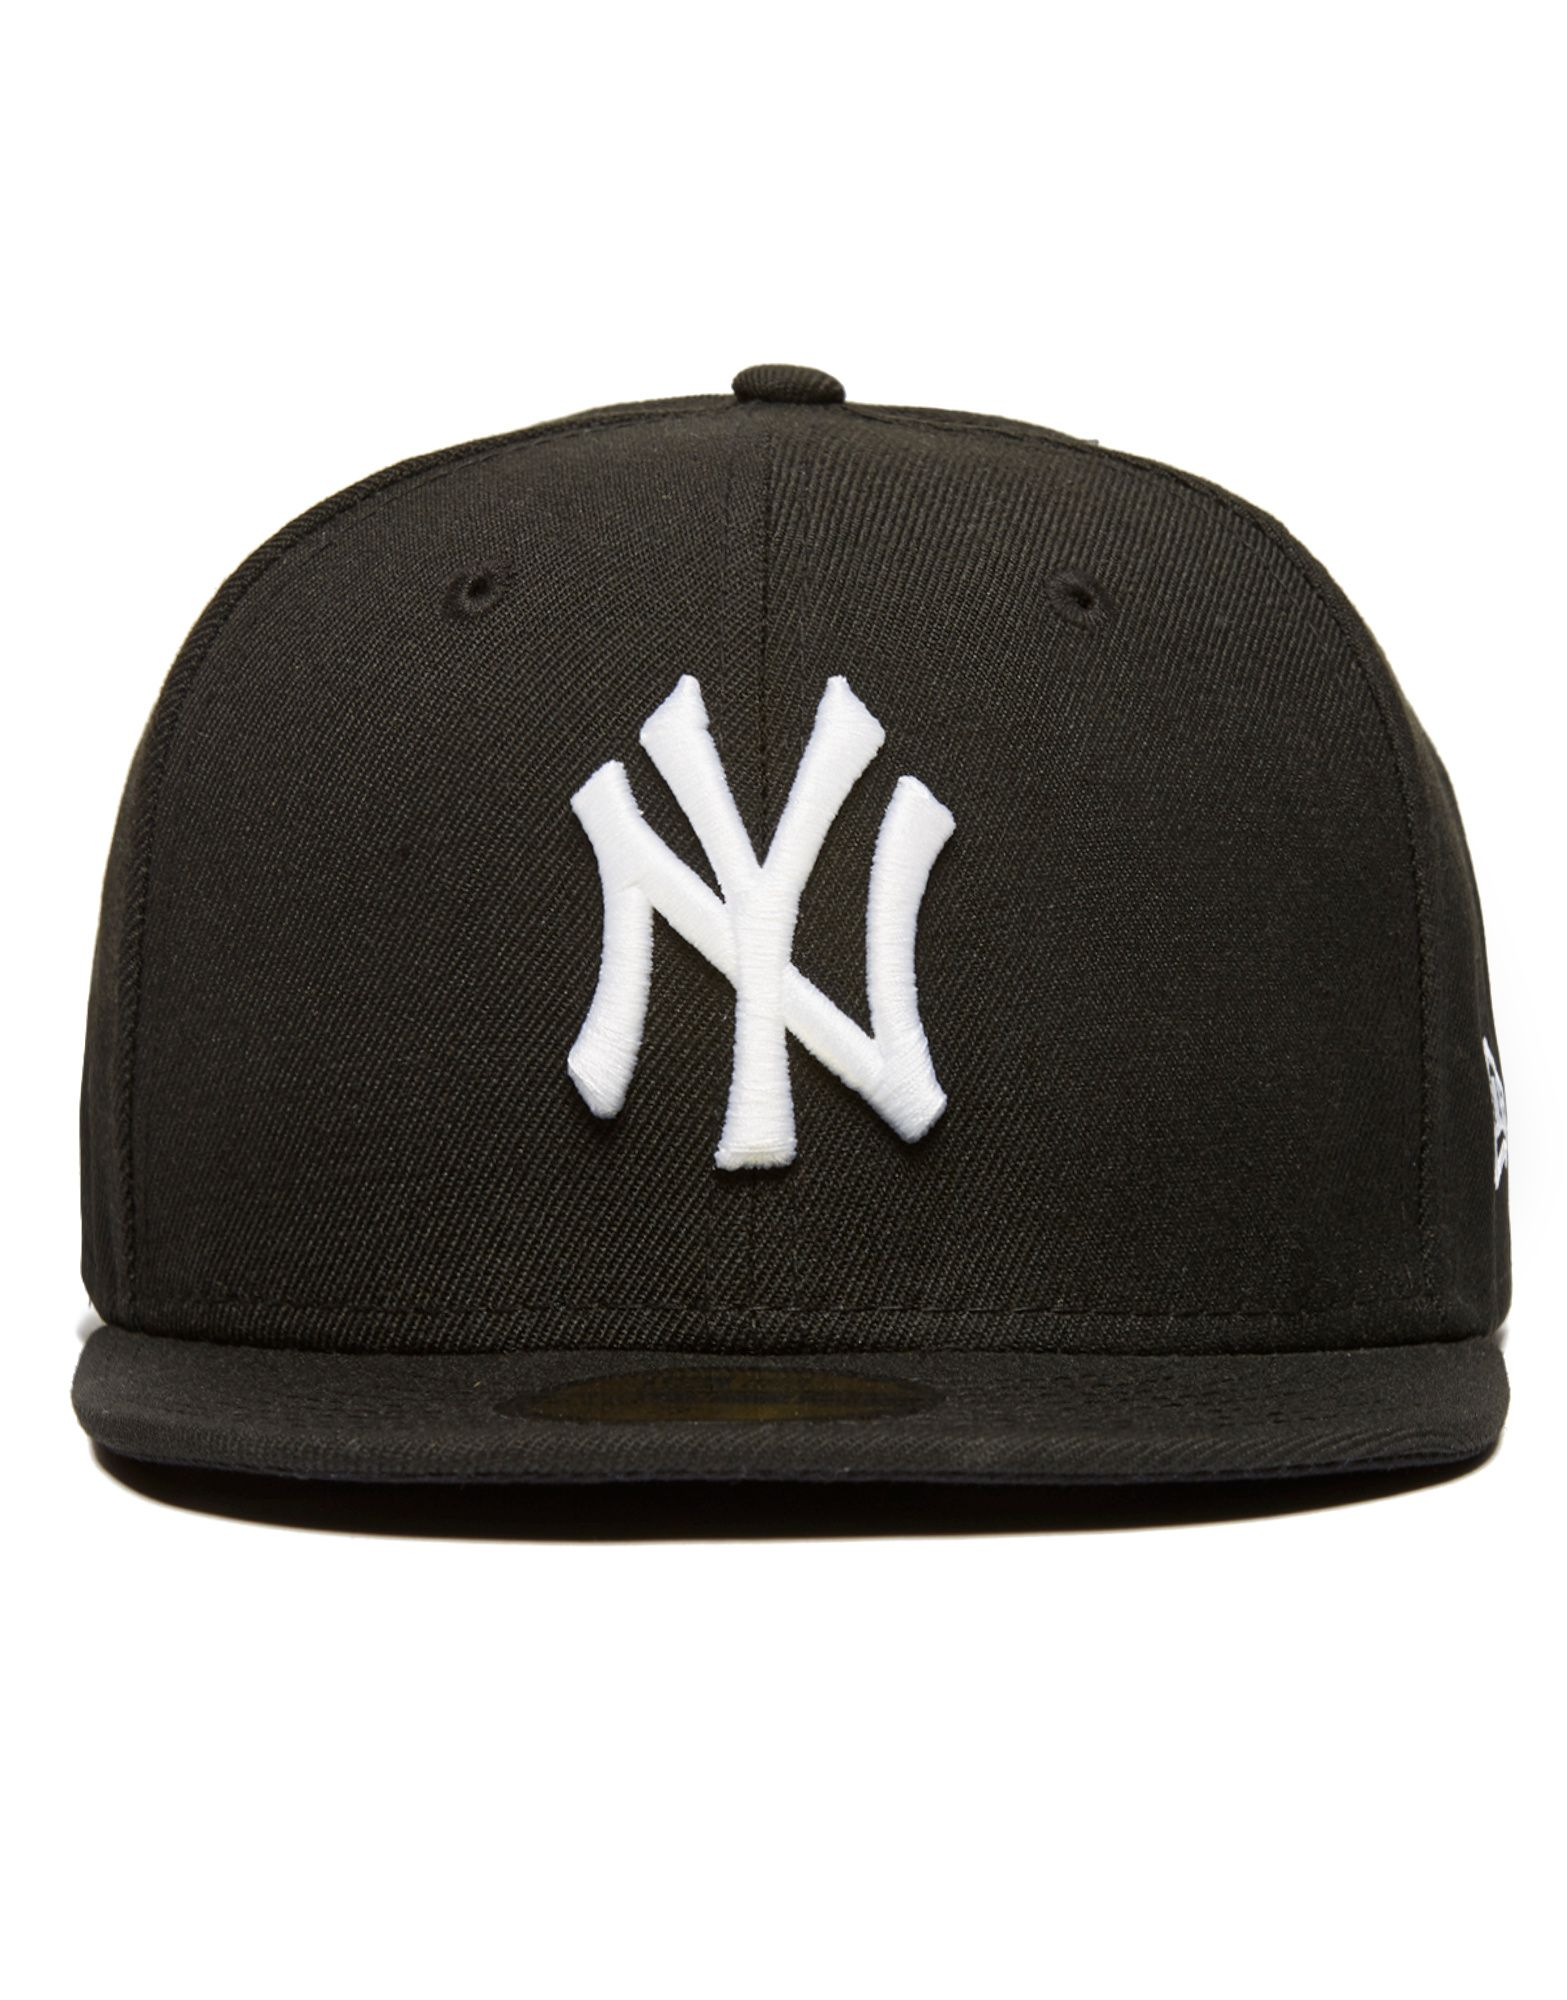 75c36e3e272 ... discount new era mlb new york yankees 59fifty fitted cap jd sports  18606 ee2bd